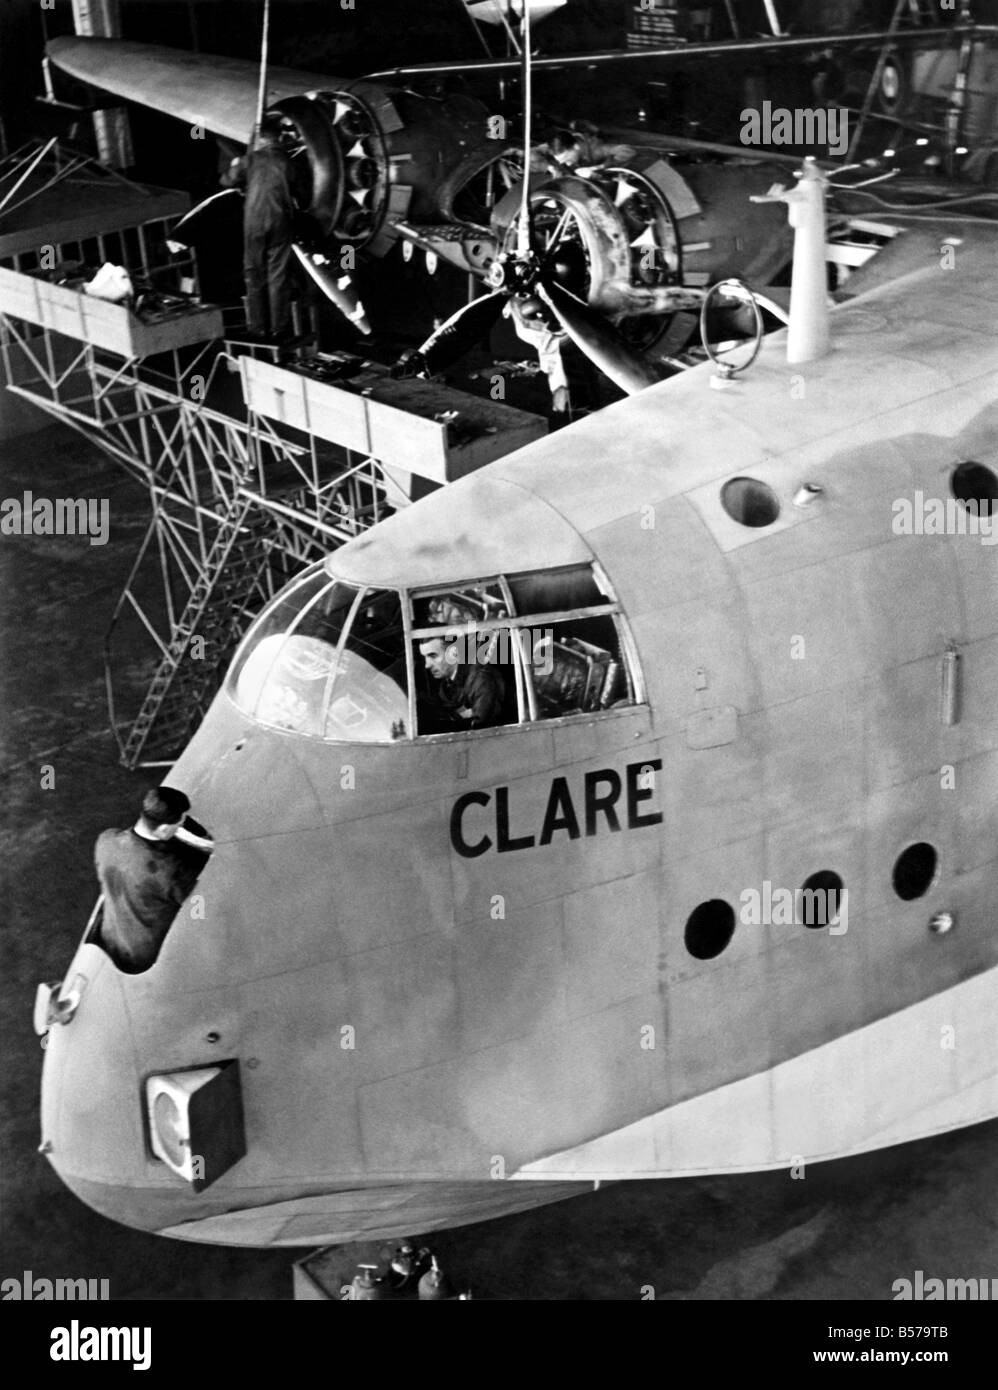 The transatlantic flying boat Clare is overhauled after her strenuous journeys, before being transferred to new Empire routes. November 1940 P004813 Stock Photo